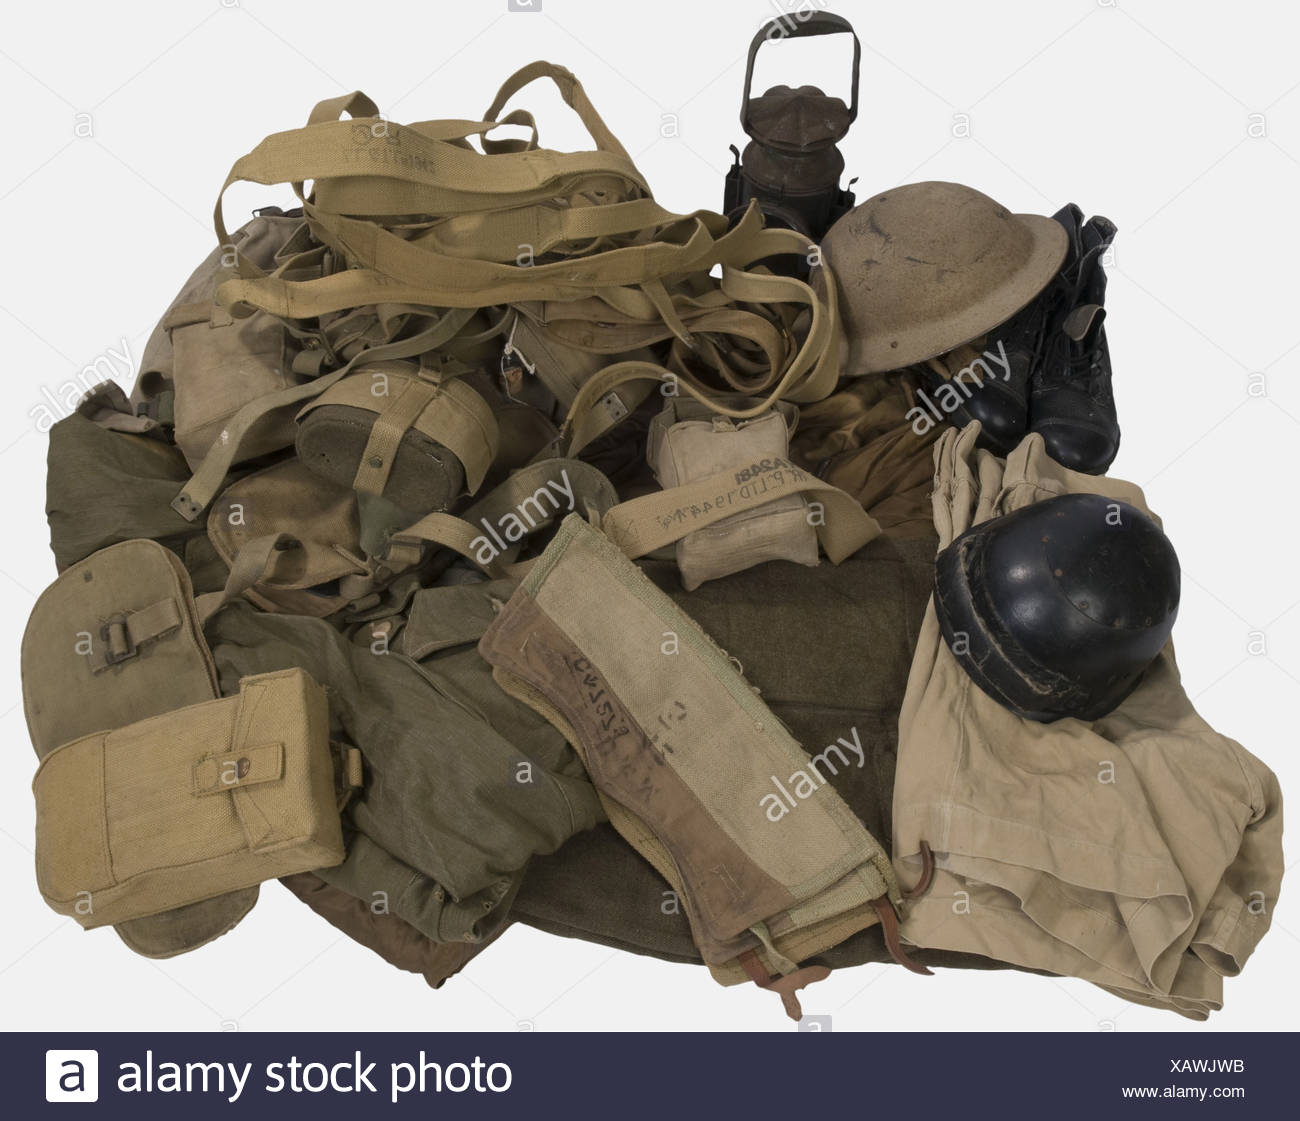 b1739dbdd1 Army Canteen Stock Photos   Army Canteen Stock Images - Alamy